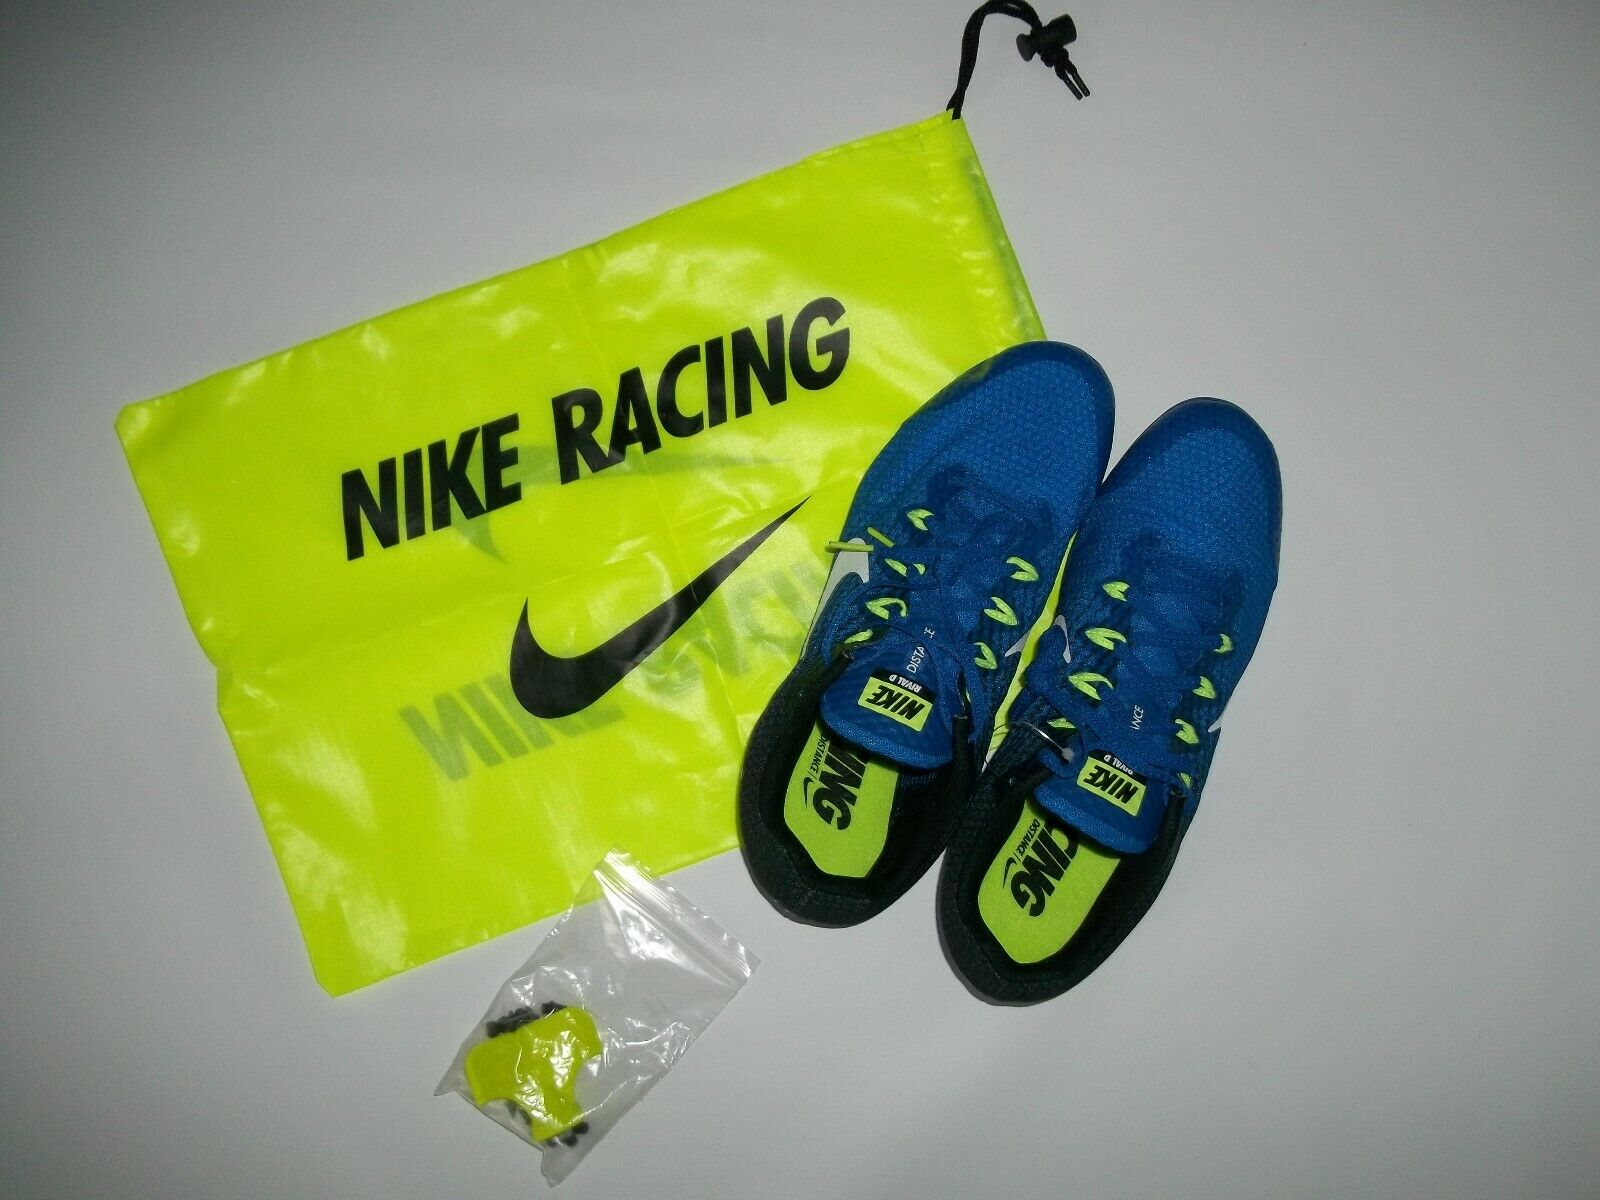 NIKE Racing Distance RUNNING Rival D SPIKED Track & Field SHOES Mens Sz 11.5 NEW